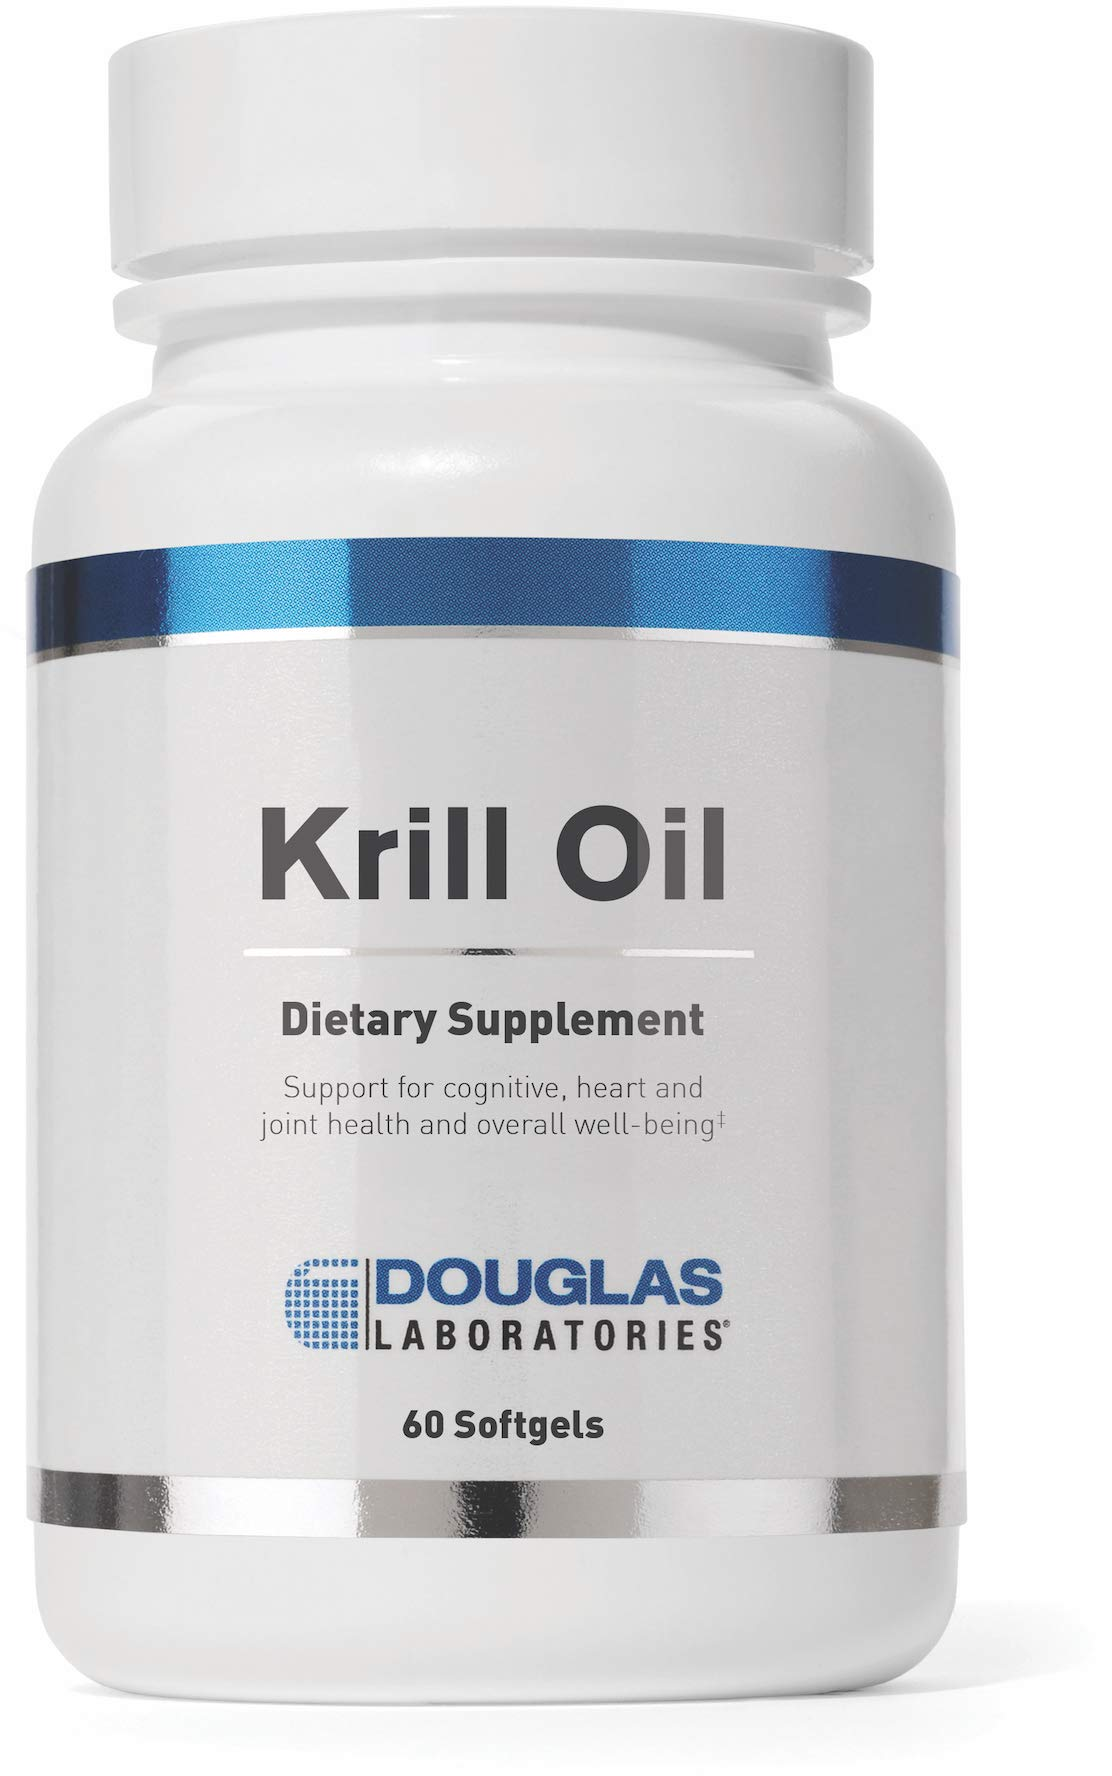 Douglas Laboratories - Krill Oil - Supports Cognitive, Heart and Joint Health* - 60 Softgels